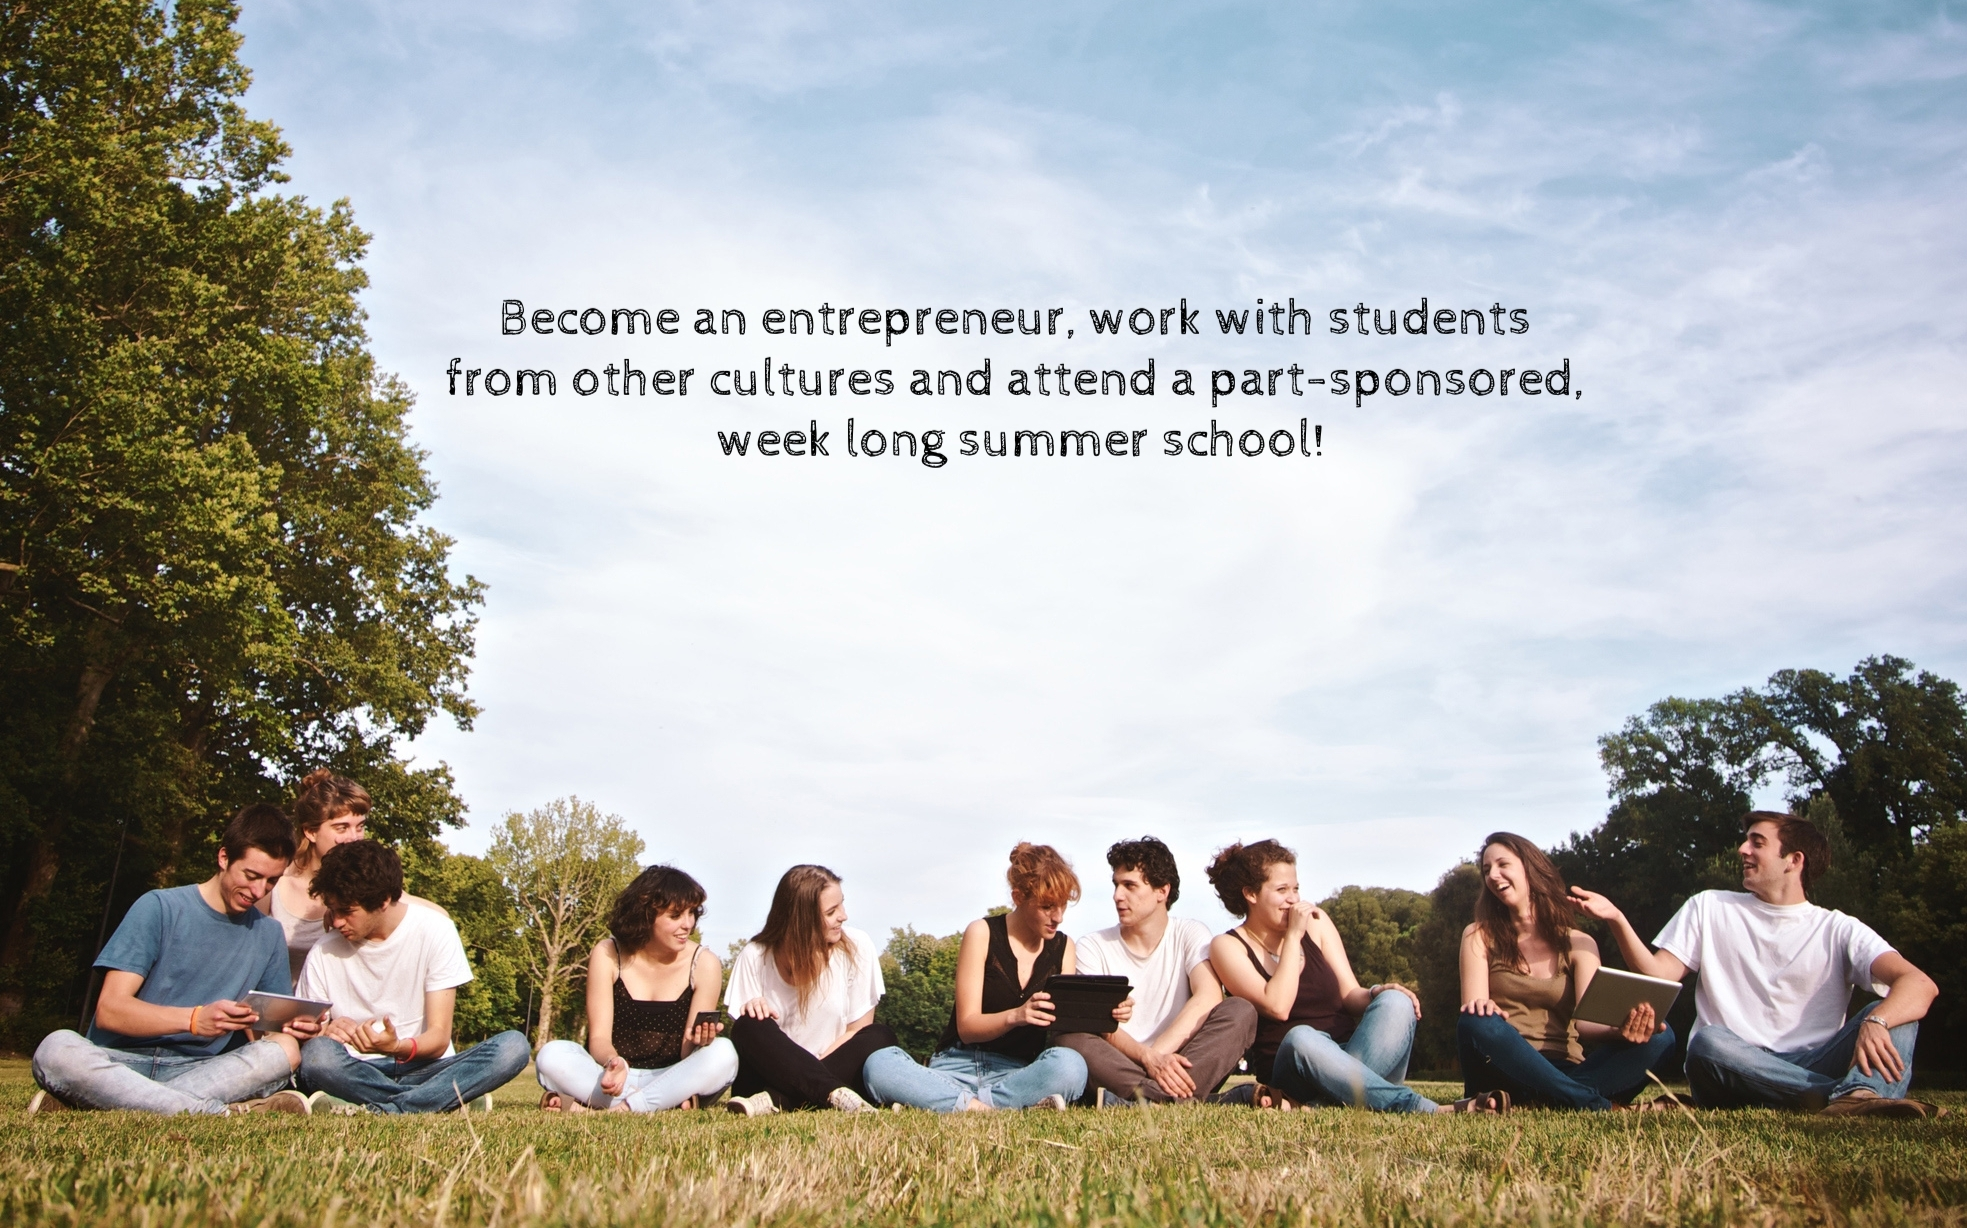 Text overlaid on image above reads: Become an entrepreneur, work with students from other cultures and attend a part-sponsored, week long summer school!